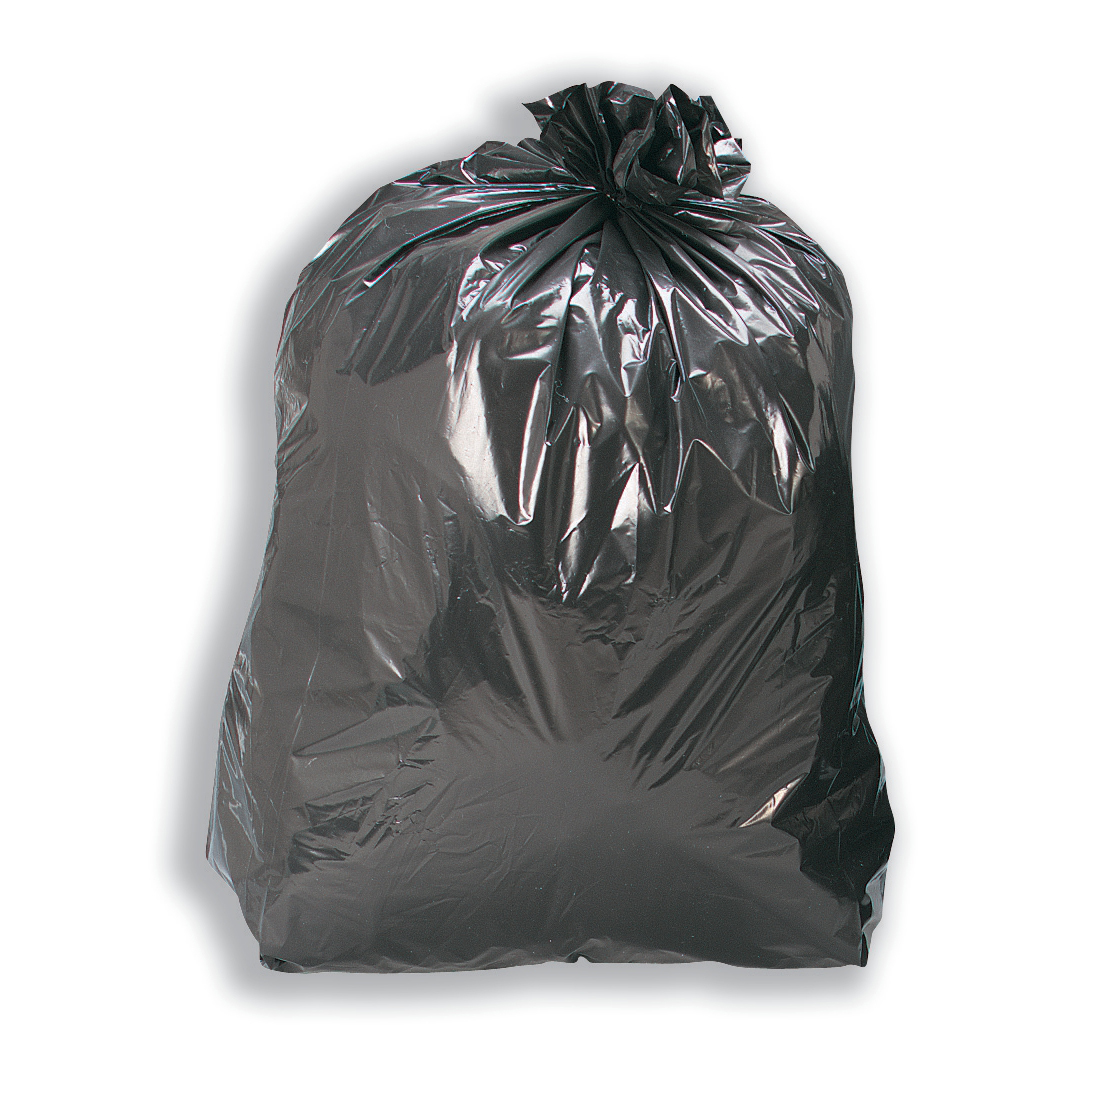 5 Star Facilities Compactor Bin Liners Extra HeavyDuty 110Litre Capacity W430/770xH950mm Black [Pack 200]